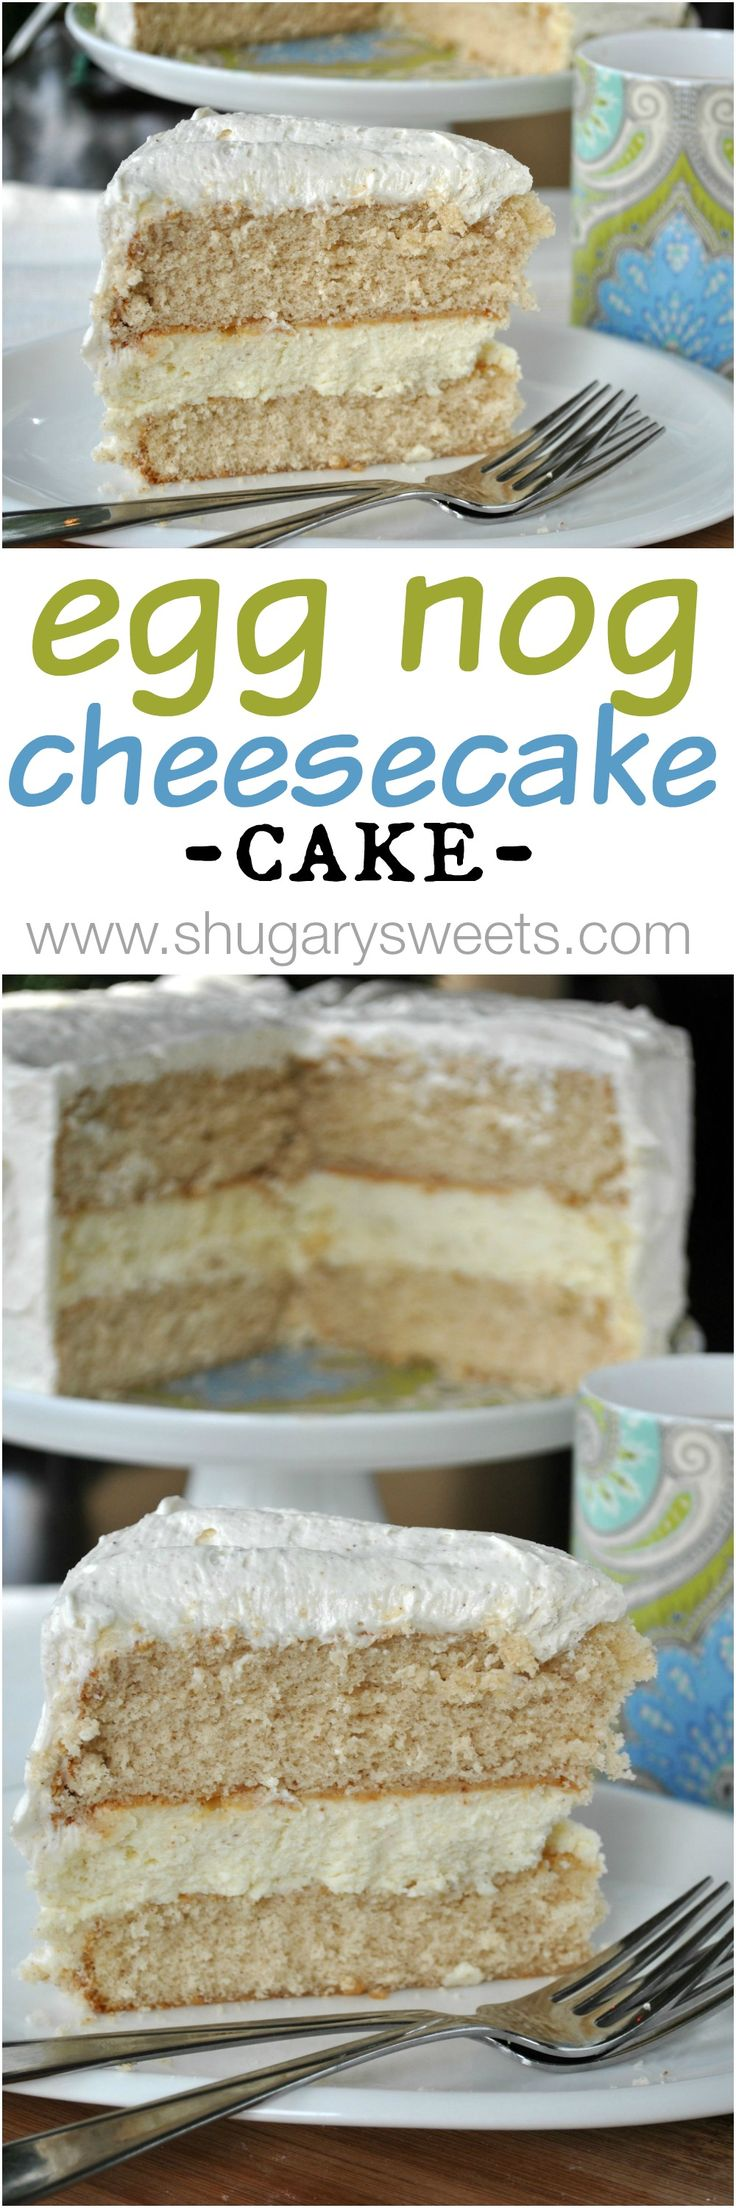 Eggnog Cheesecake Cake- two layers of spice cake (from scratch!) with a creamy layer of cheesecake topped with eggnog frosting! #cheesecake #eggnog #christmas